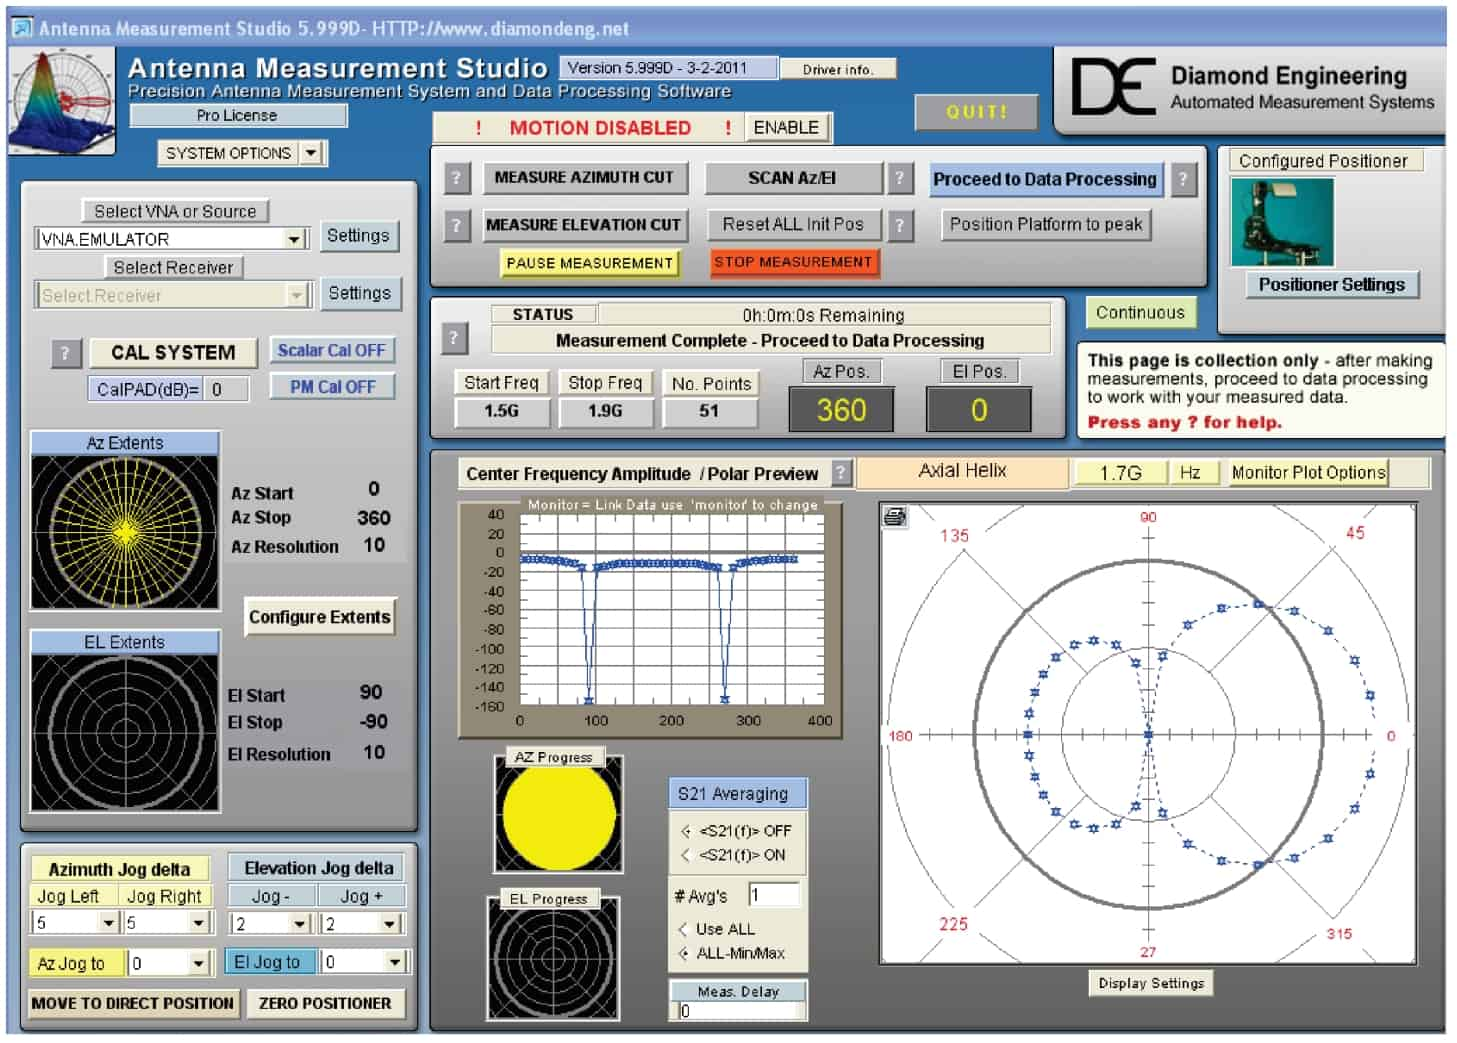 Antenna Test and Measurement Software